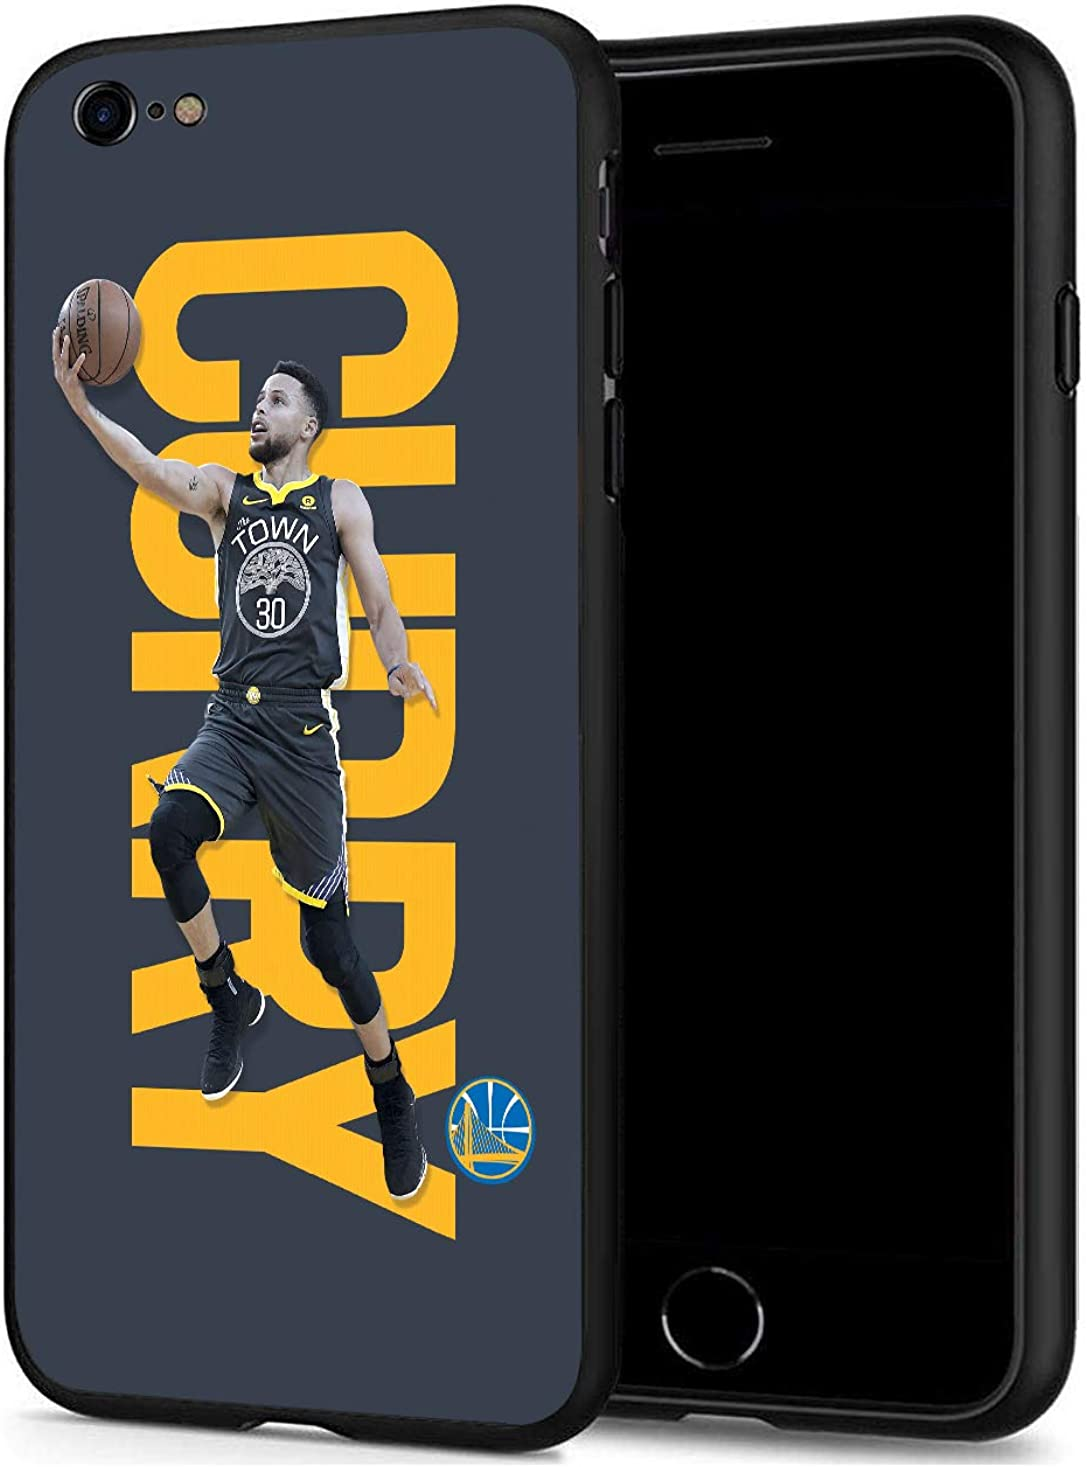 GONA iPhone 7 iPhone 8 Case for Basketball Fans, Soft Silicone Protective Thin Case Compatible with iPhone 7/8 (ONLY)